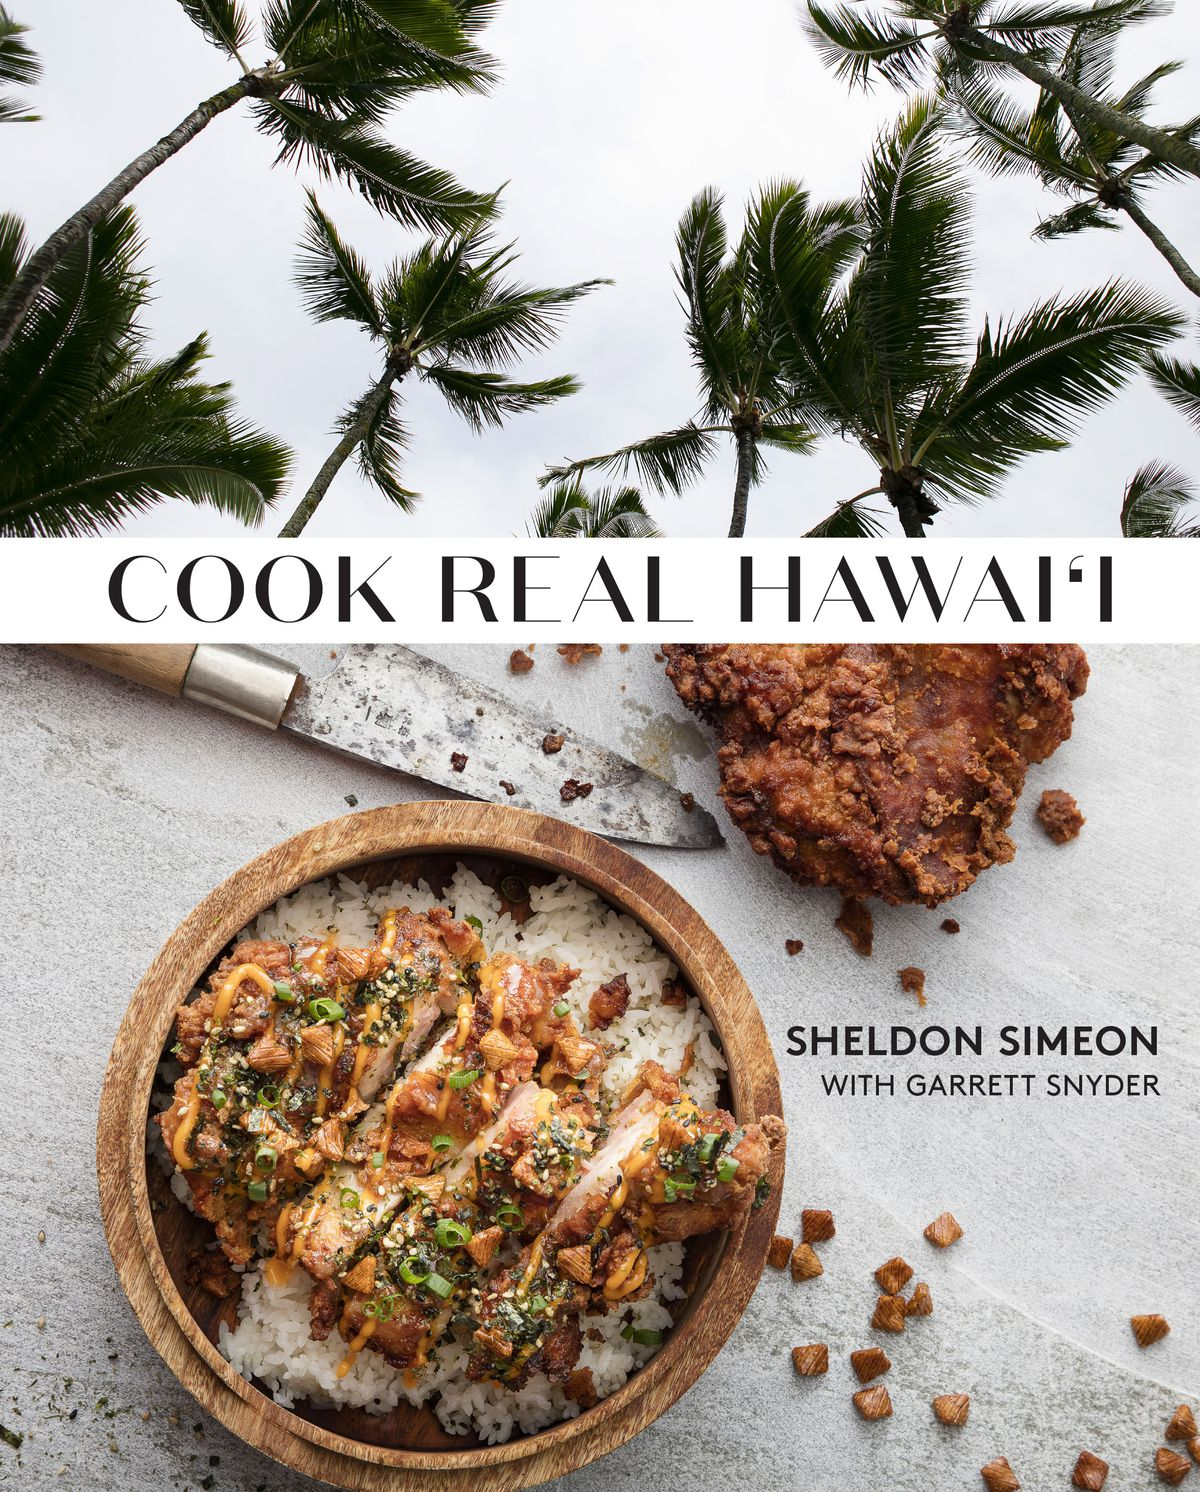 The Cook Real Hawaii book cover: a photo of palm trees spliced with a photo of a rice bowl